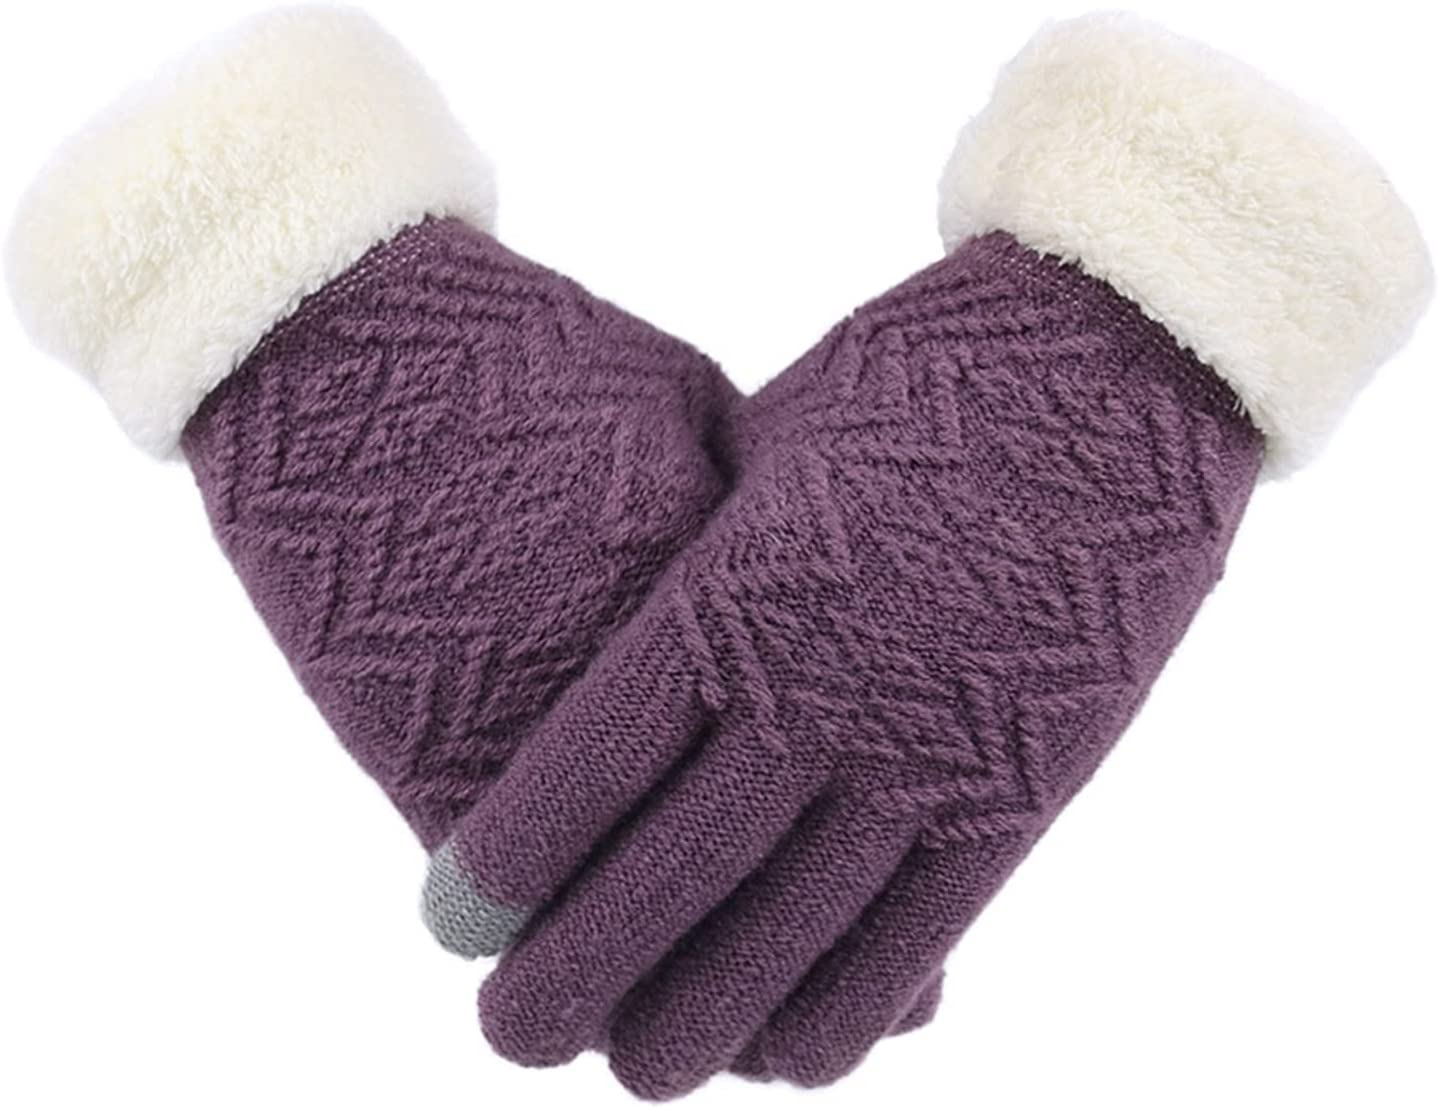 Female Thicken Mittens Winter Warm Gloves Ladies Full Finger Soft Stretch Knit Mittens (Color : 3, Gloves Size : One Size)